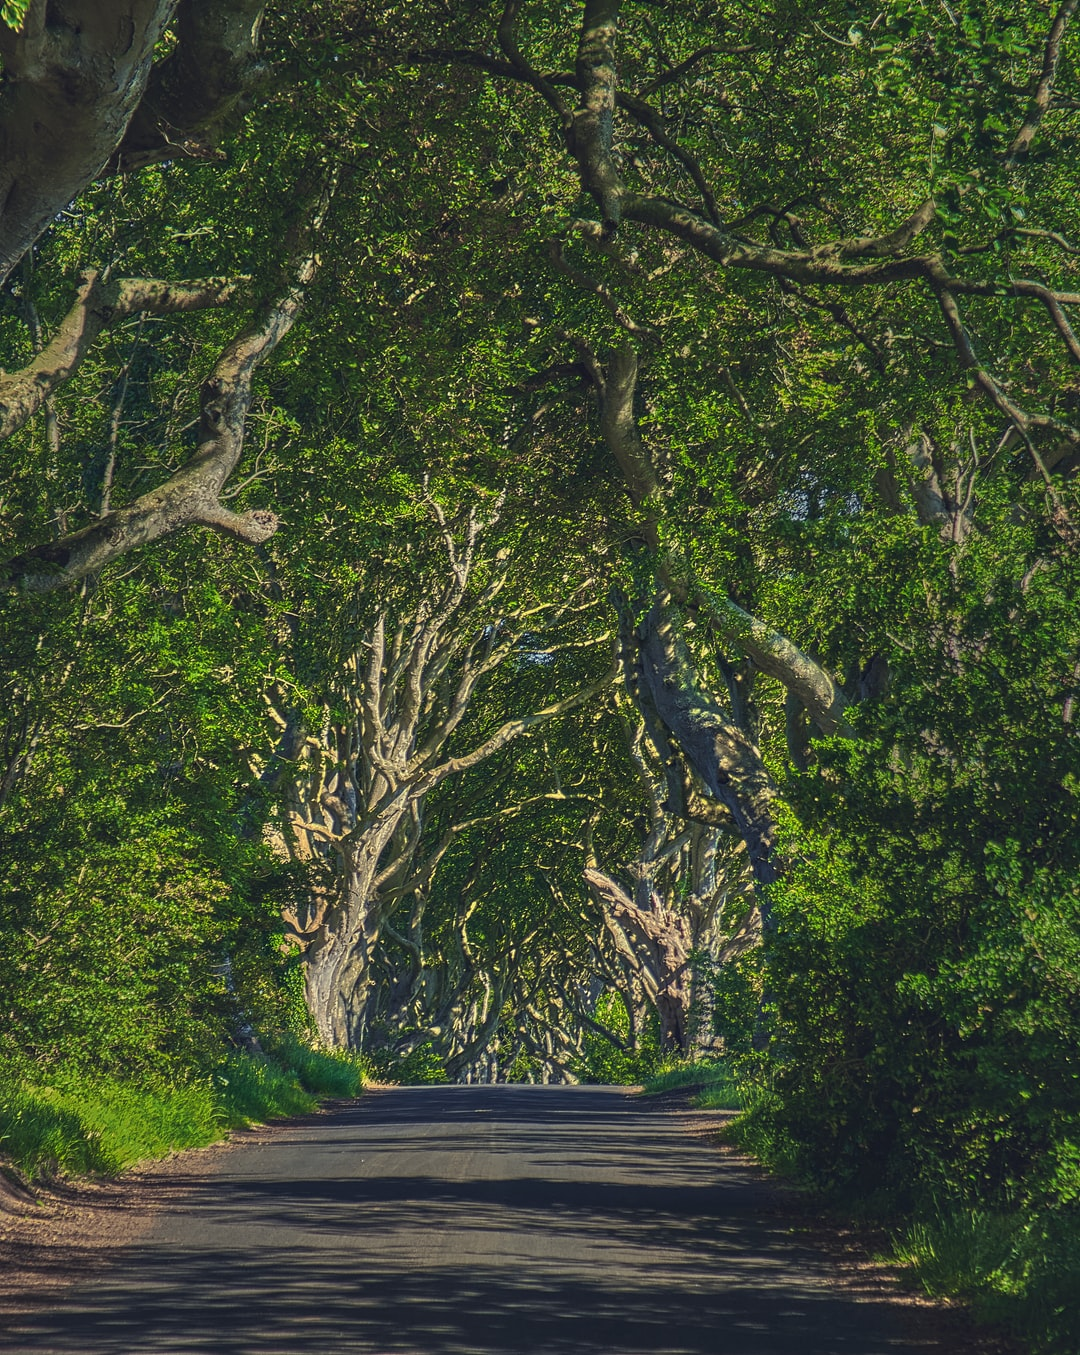 The Dark Hedges (also known as The King's Road from Game of Thrones; Jun., 2020).